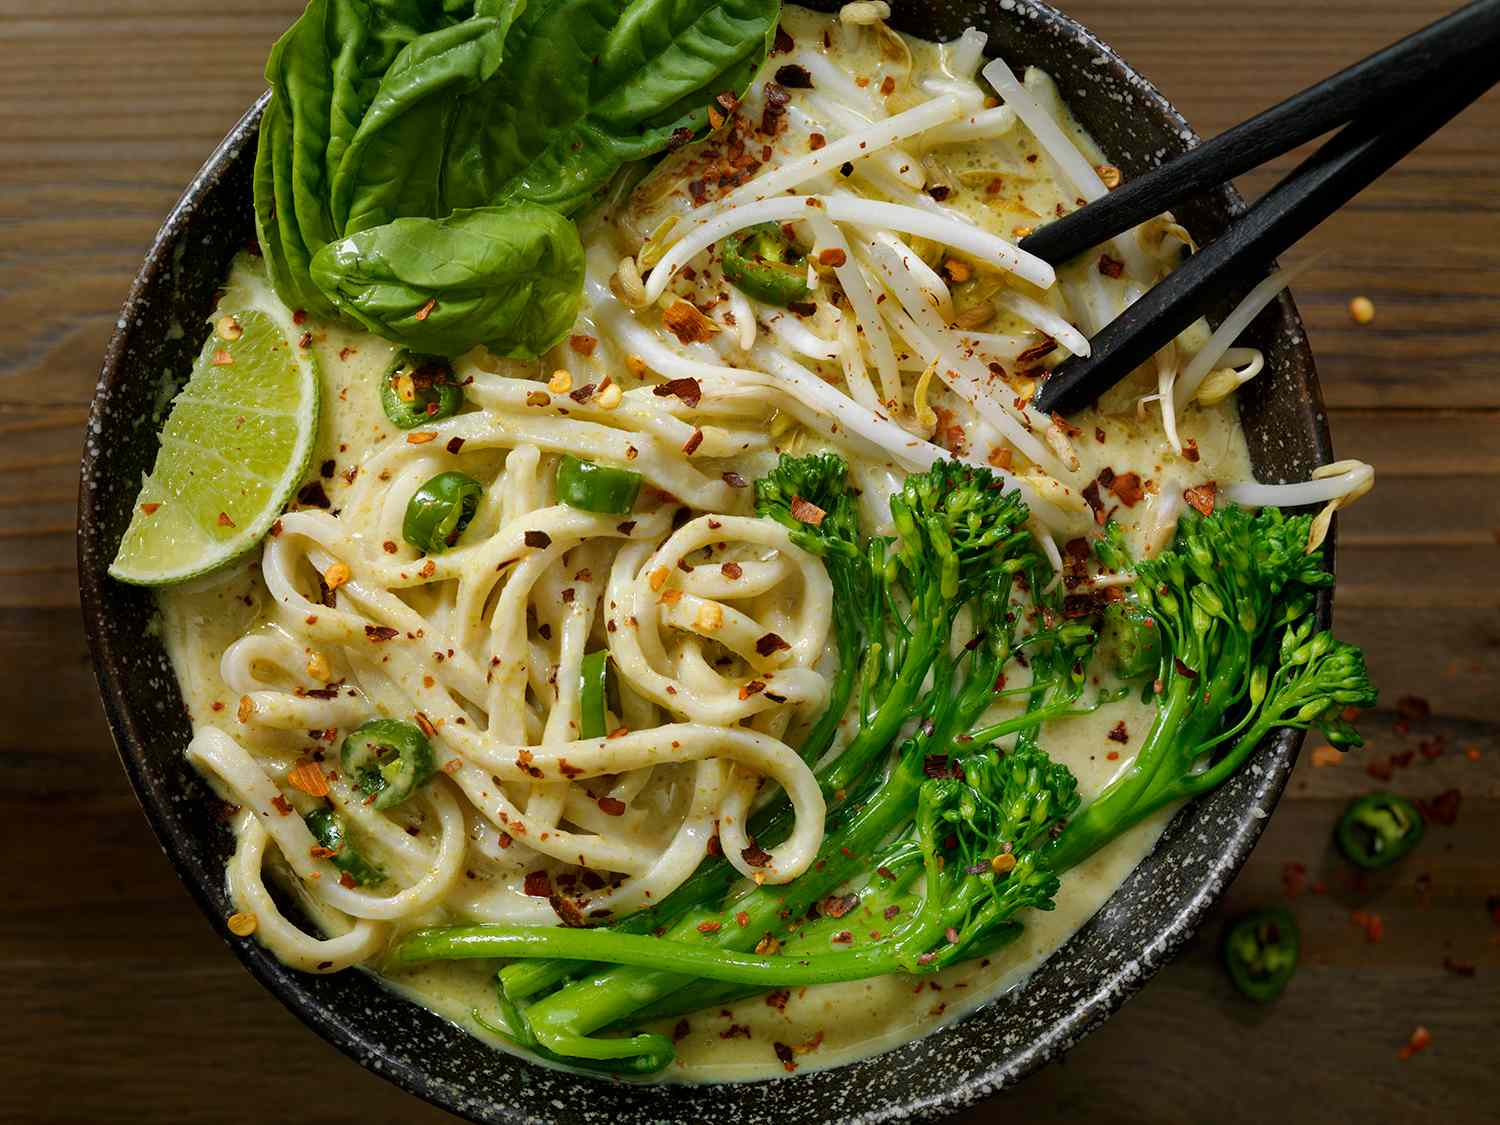 Green Curry Noodle Soup with Broccolini, Bean Sprouts and Fresh Basil